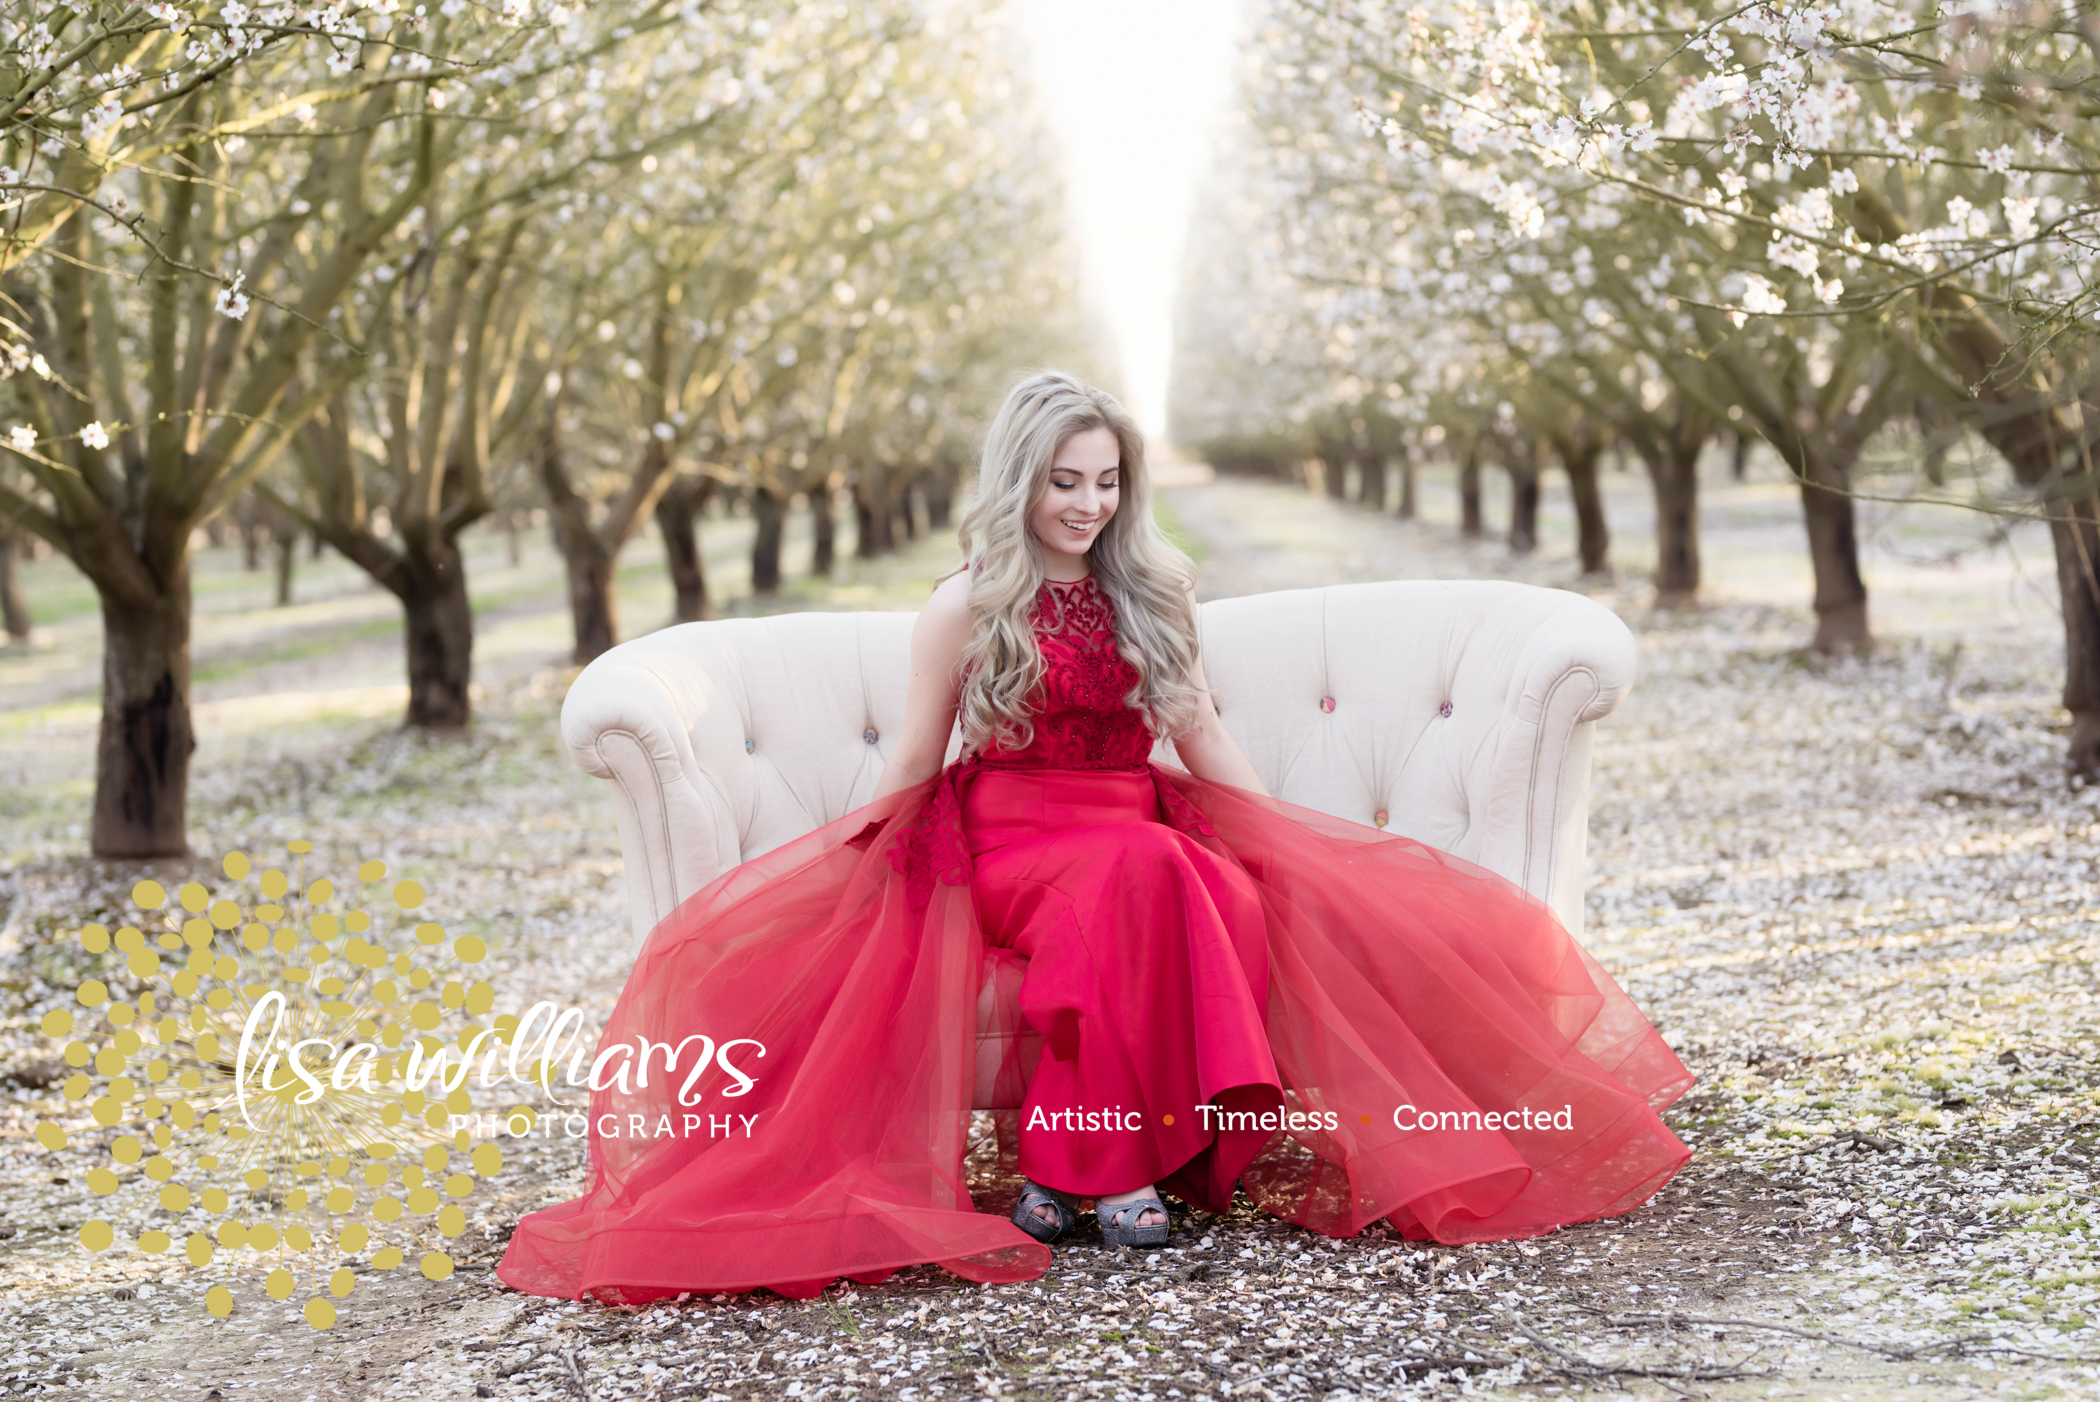 Lisa Williams photography – grass valley portrait photographer- senior portrait photographer- northern California senior portraits- Nevada county senior portraits – Colfax Senior Portraits – Rocklin Senior Portraits- Roseville Senior Portraits – t-10.jpg